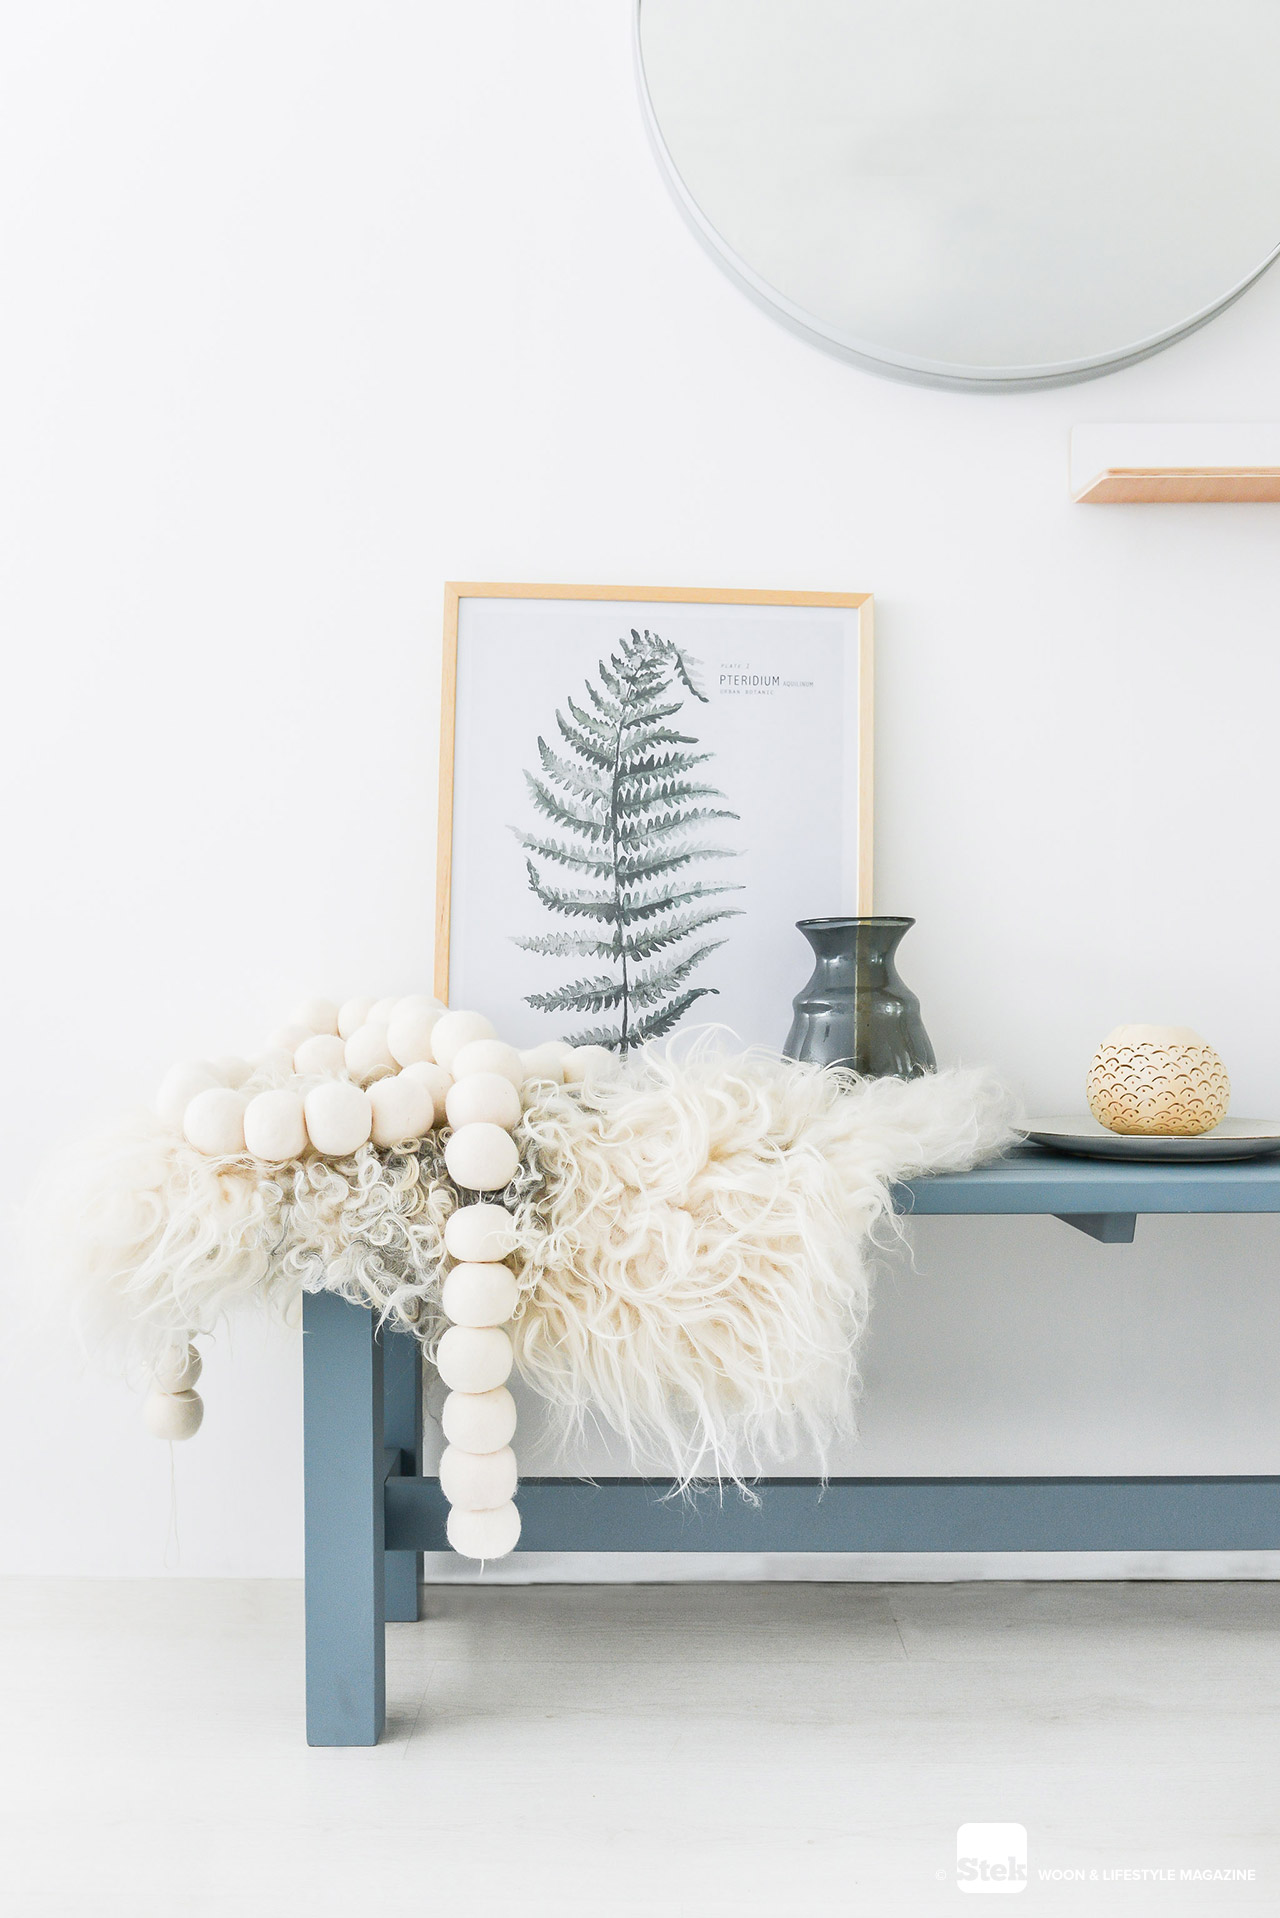 Denim drift dreams | Slaapkamer styling | Stek Magazine